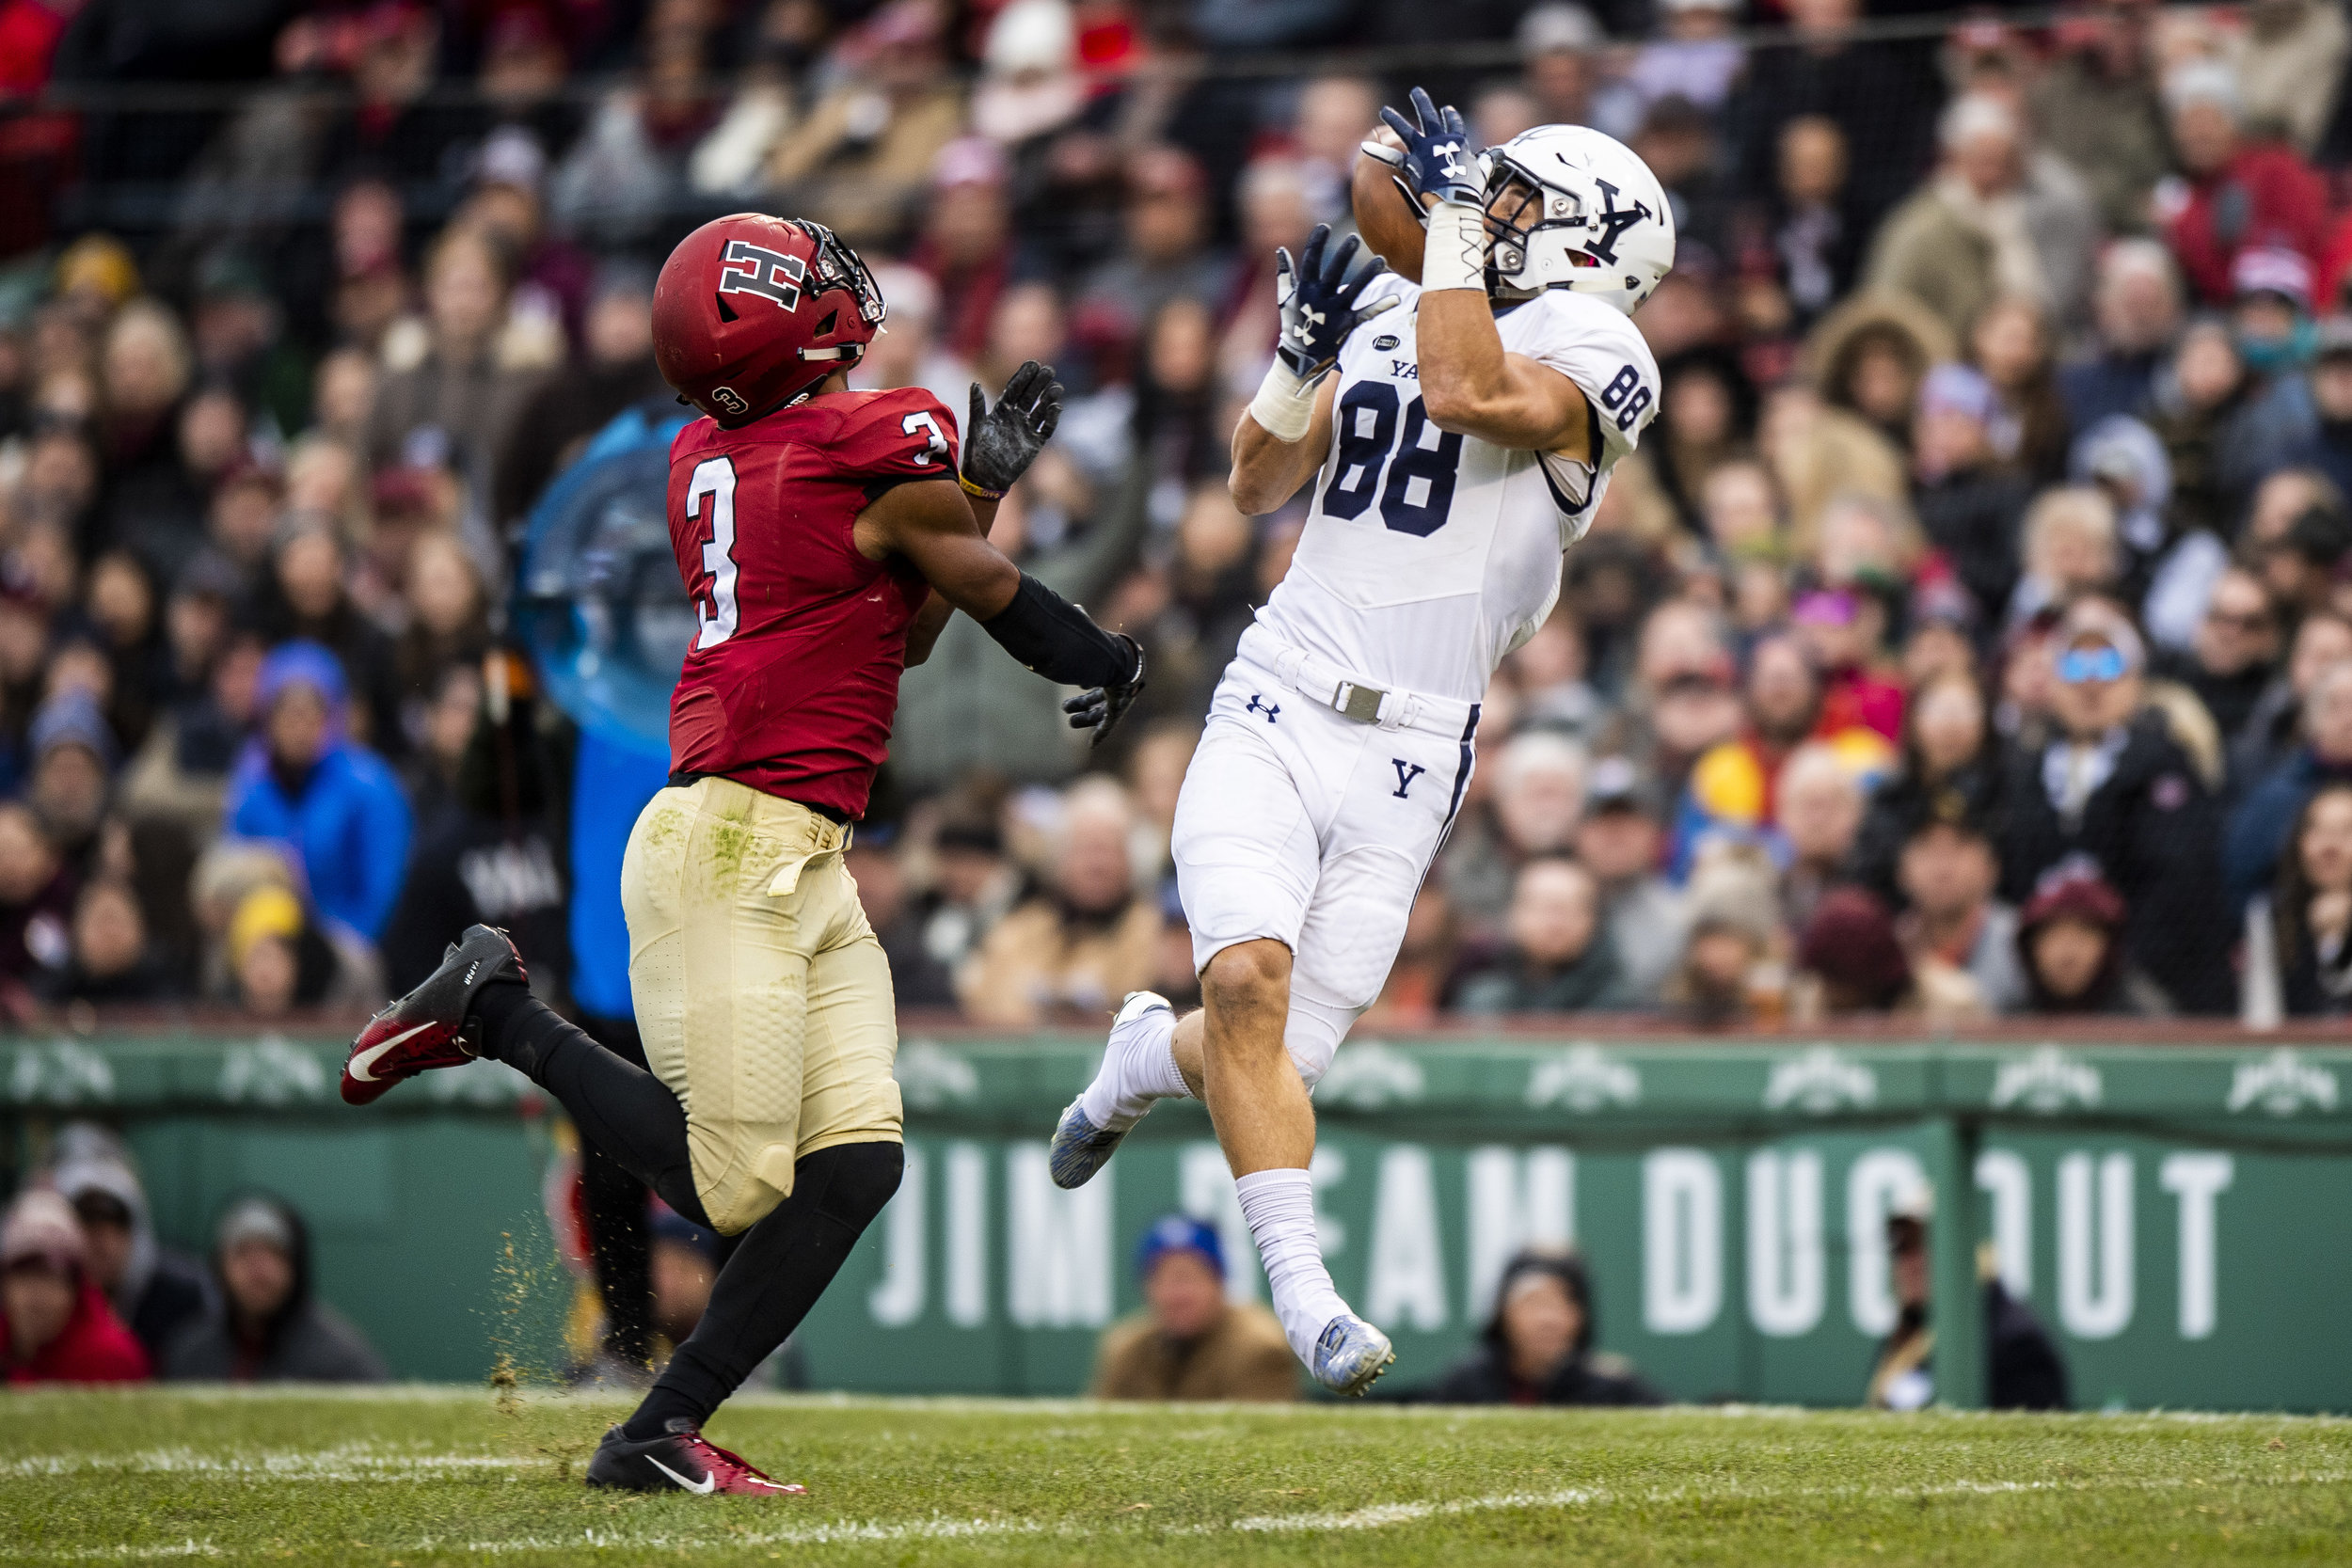 November 16, 2018, Boston, MA: A Yale football player makes a catch during the Harvard University and Yale University football Game at Fenway Park in Boston, Massachusetts on Thursday, November 16, 2018. (Photo by Matthew Thomas/Boston Red Sox)